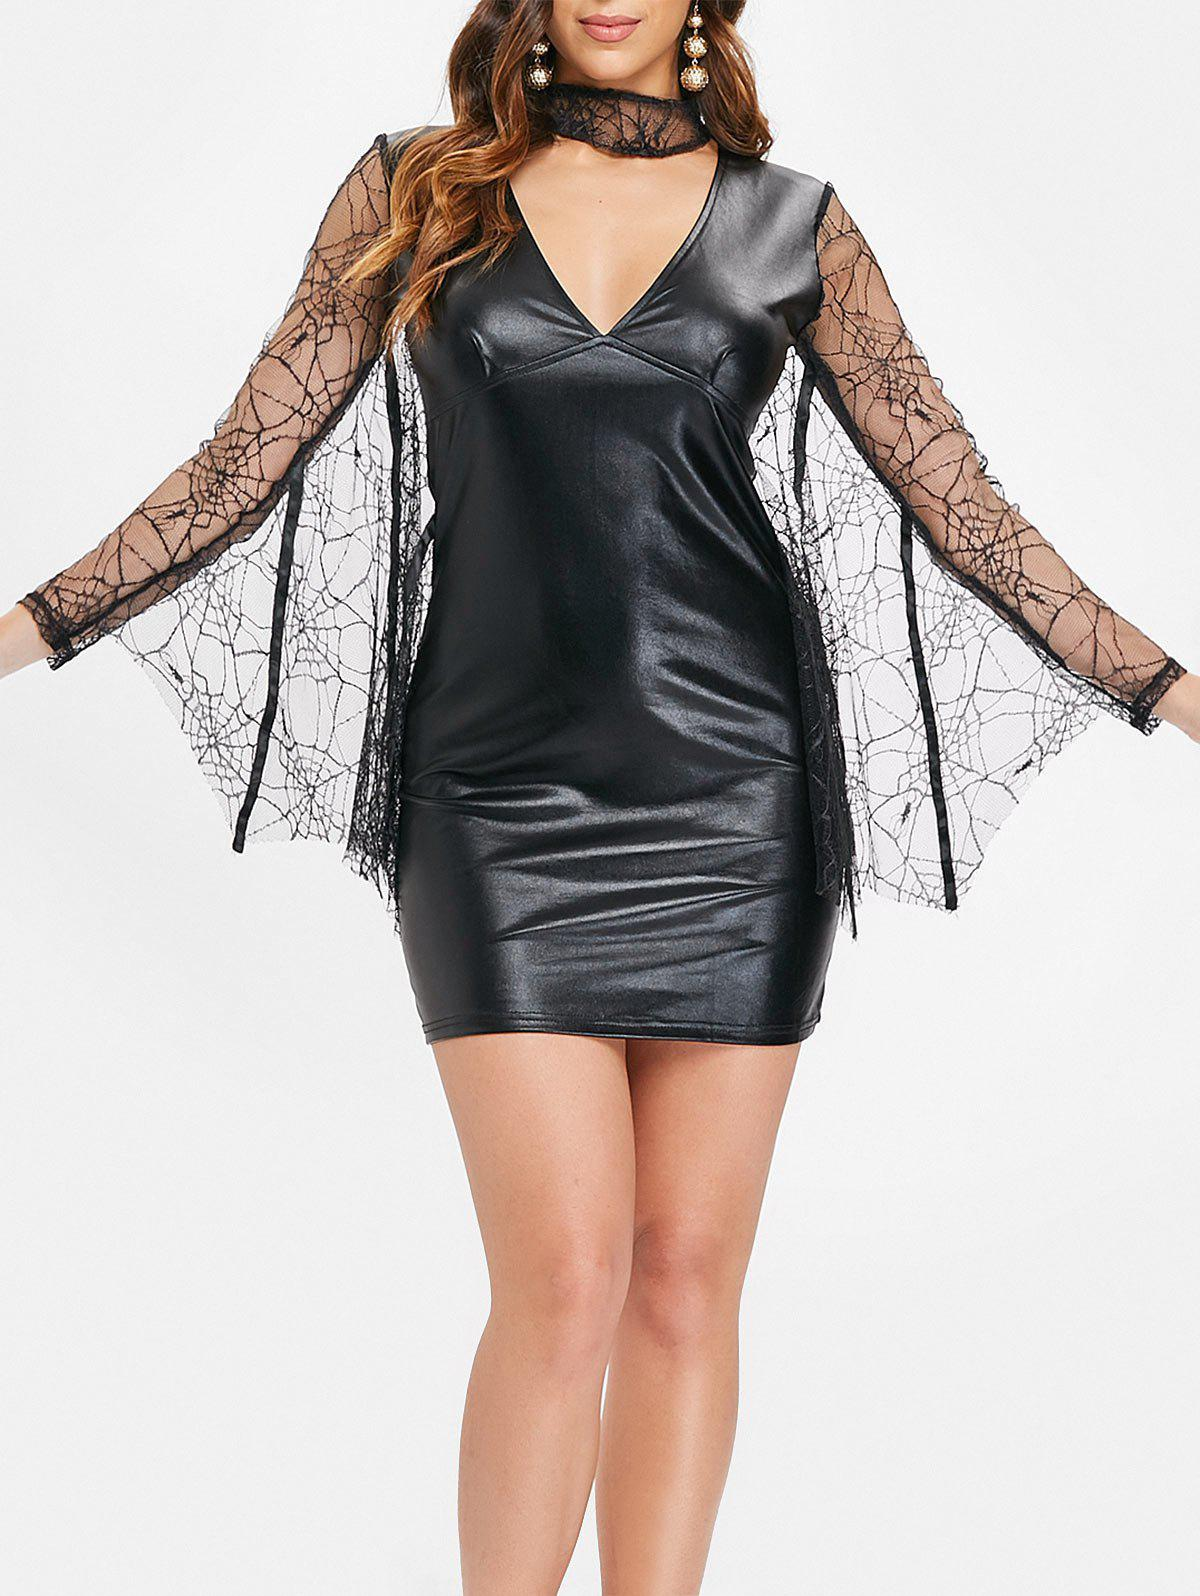 Lace Batwing Faux Leather Mini Dress - BLACK L